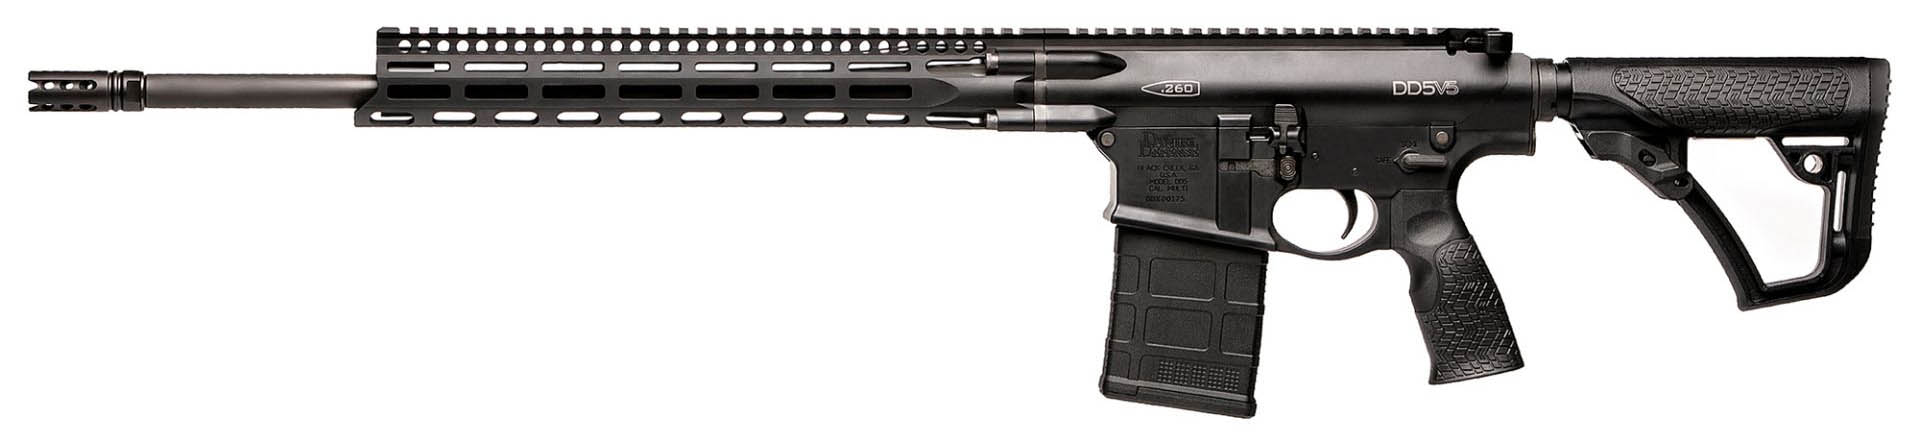 Daniel Defense DD5V5 260